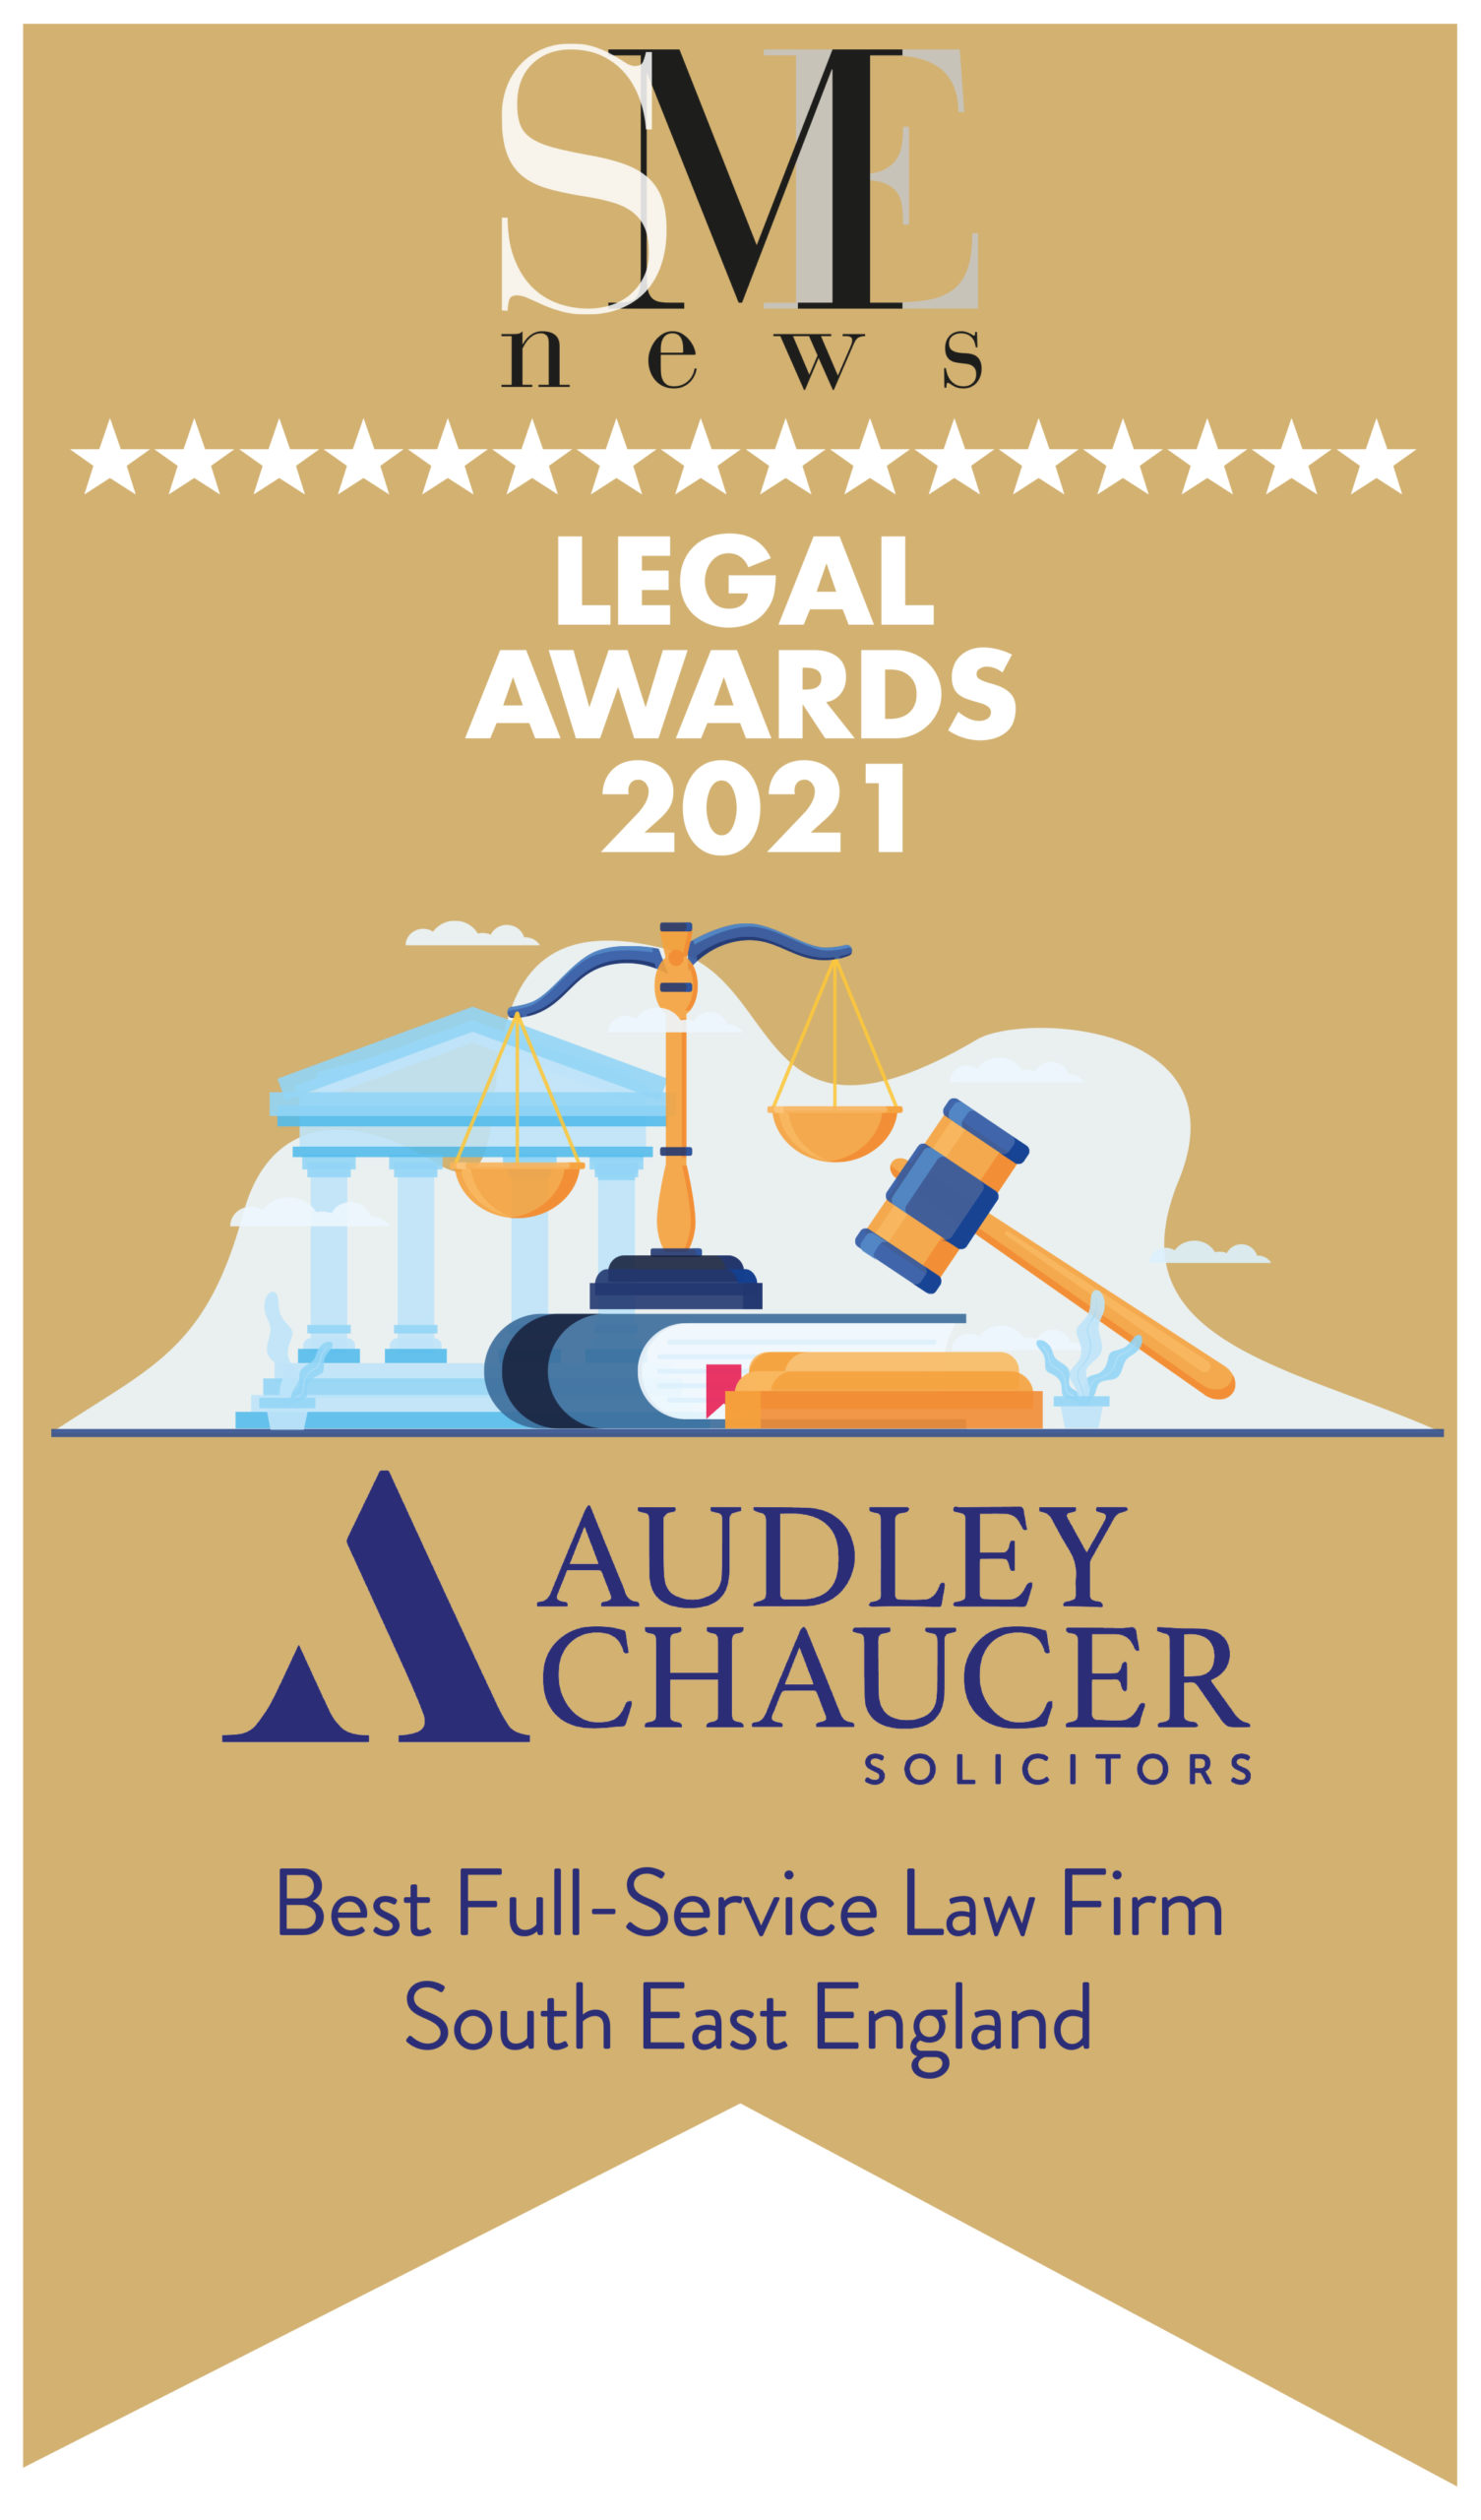 Audley Chaucer awarded Best Full-Service Law Firm in South East England